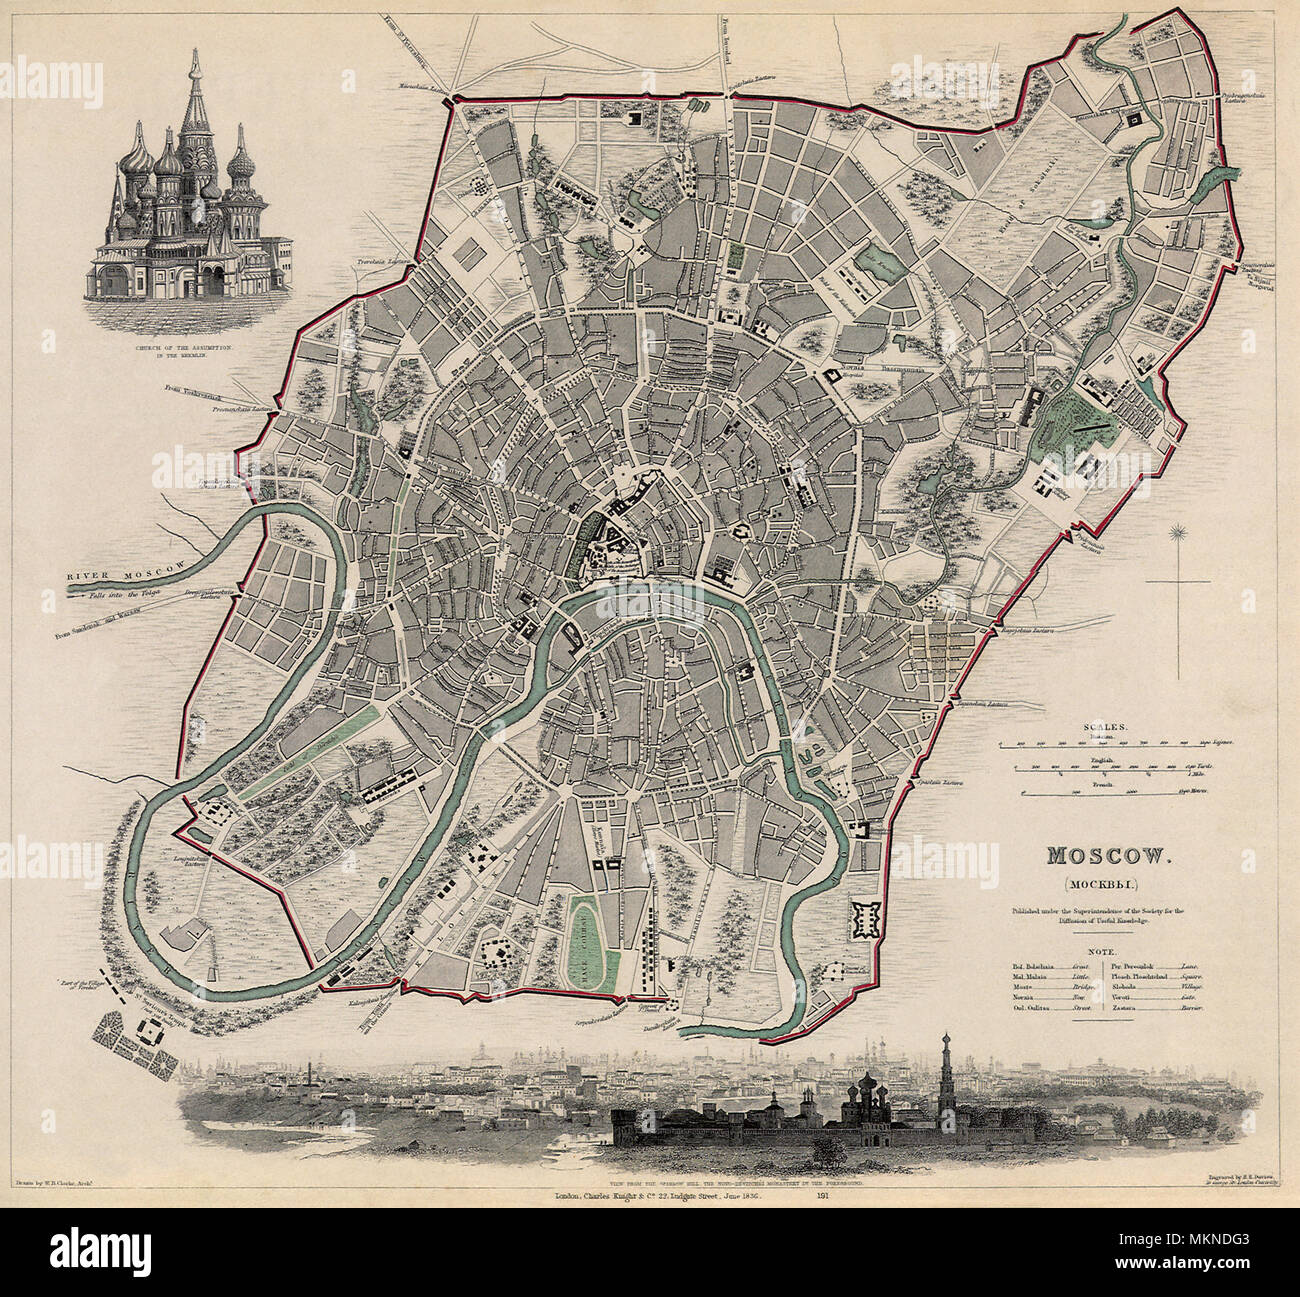 Map of Moscow 1836 - Stock Image